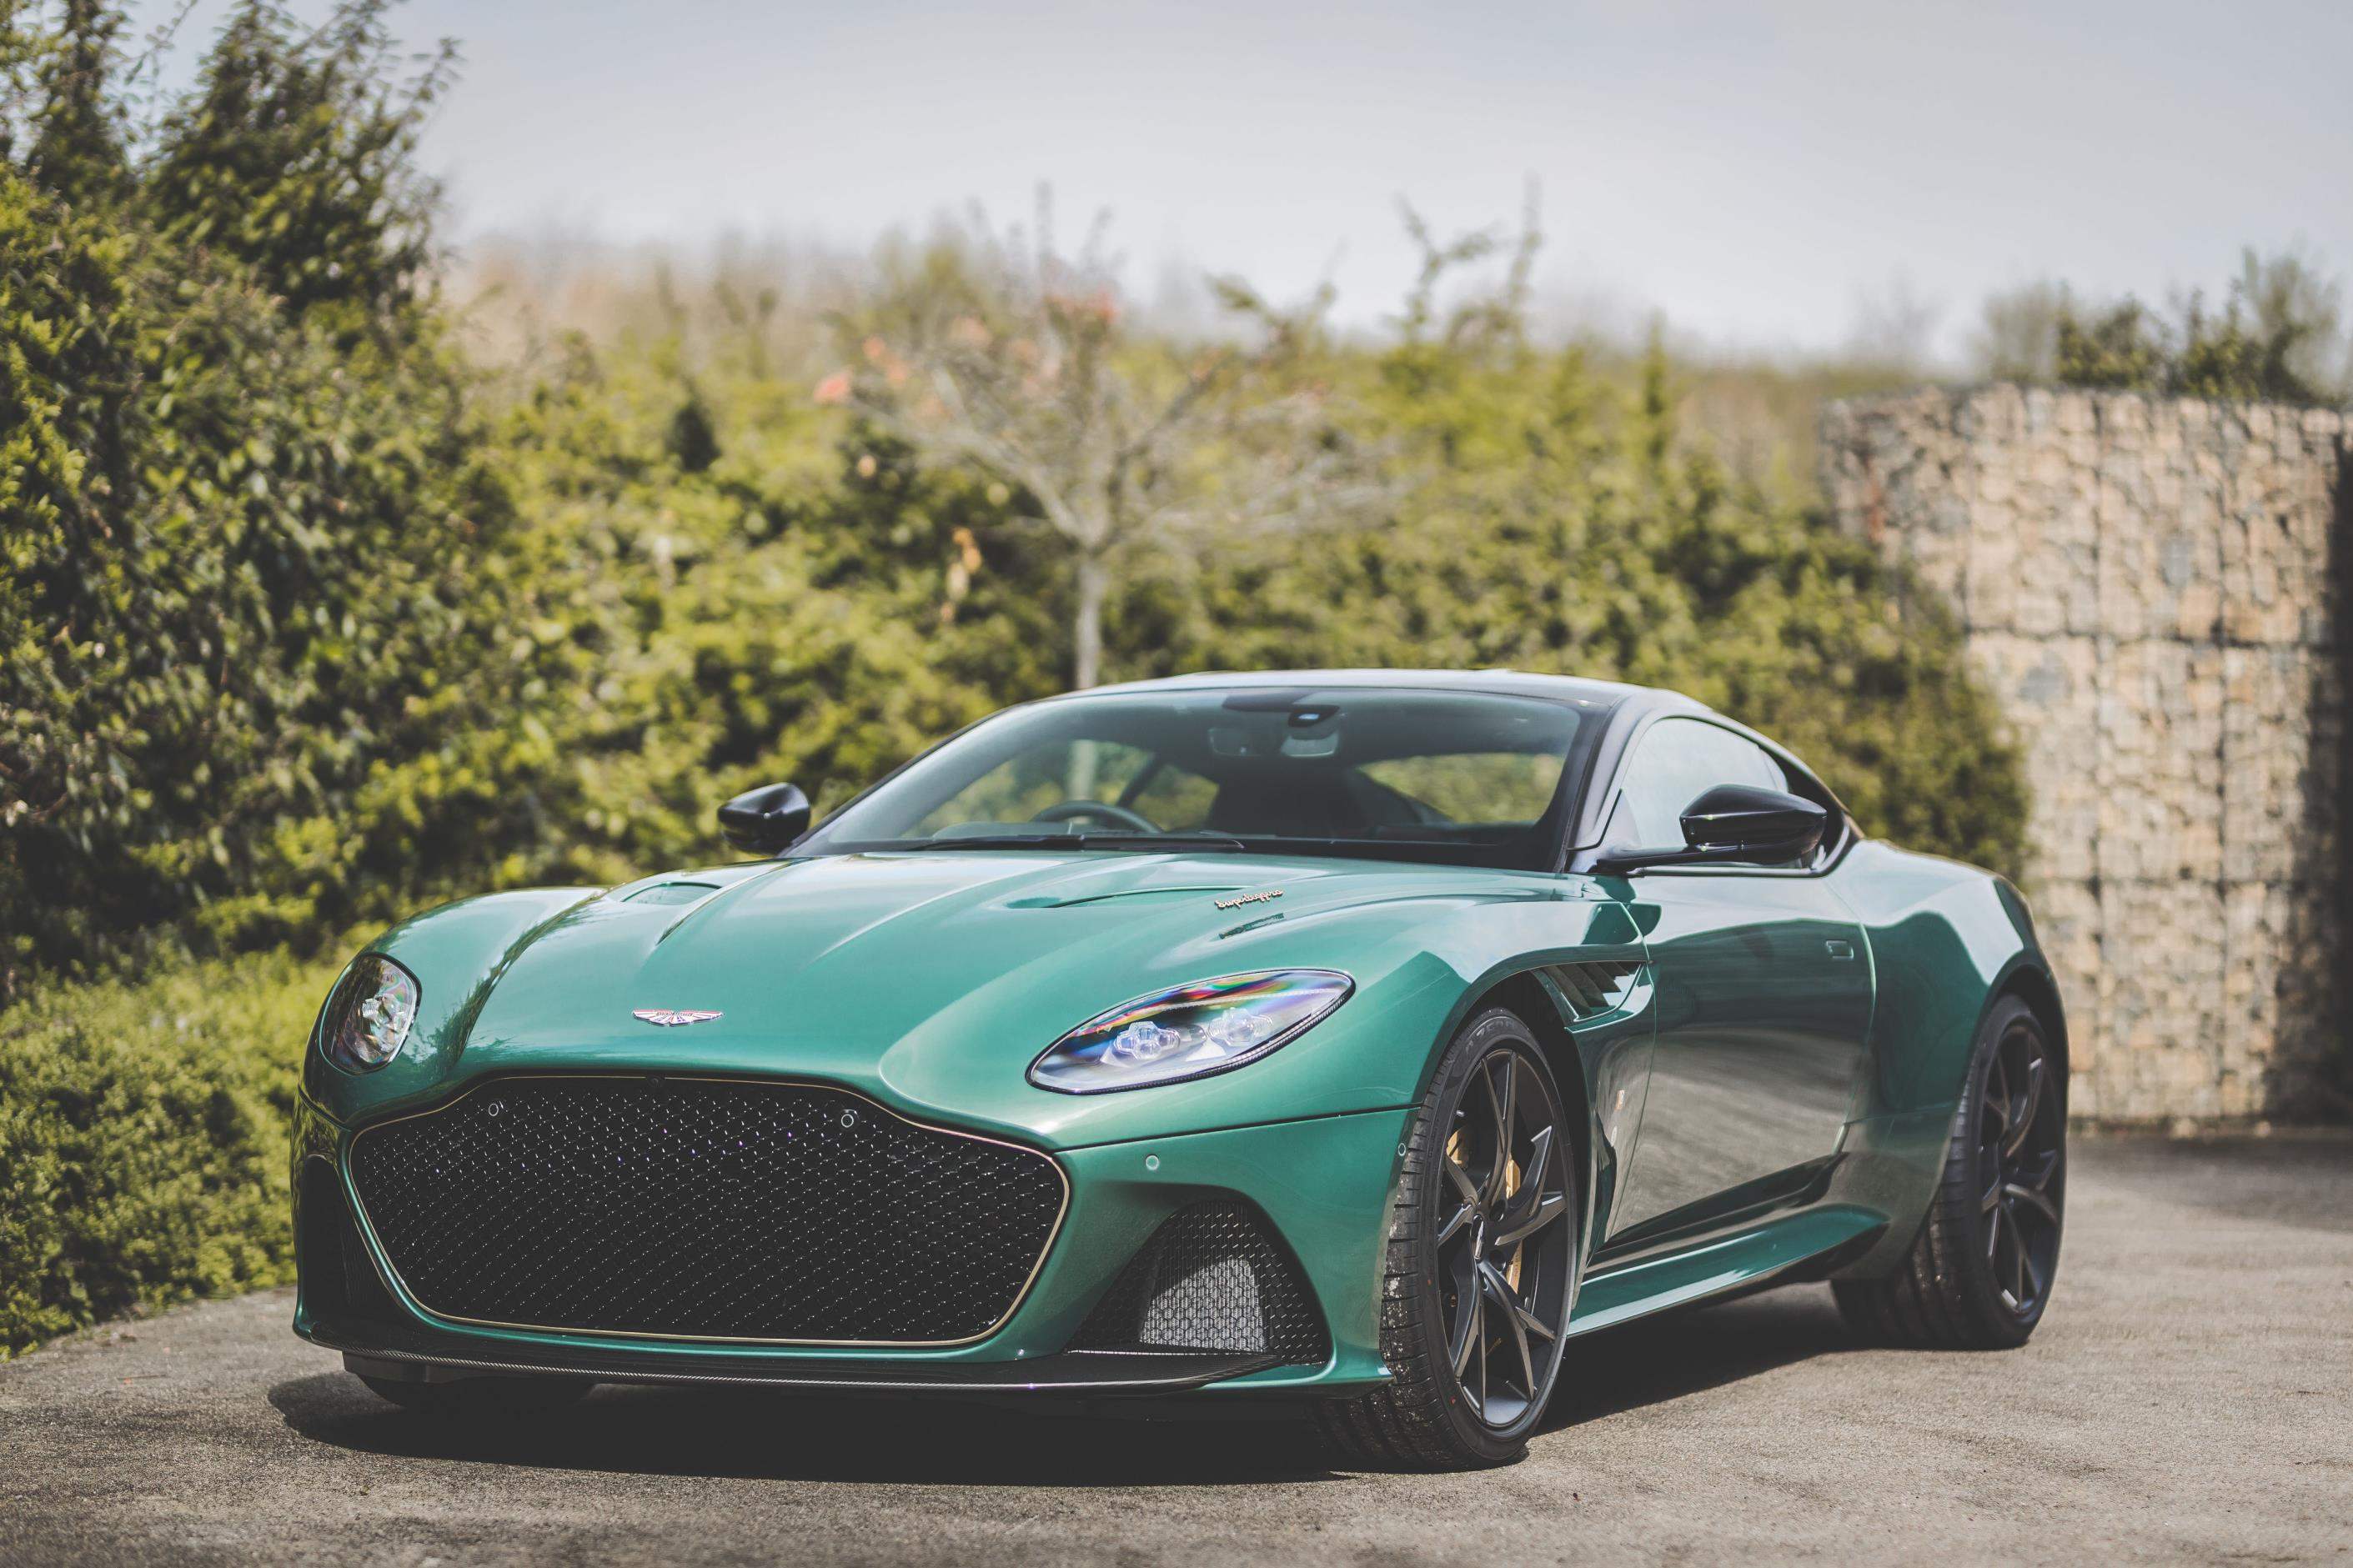 Aston Martin 'DBS 59' Superleggera